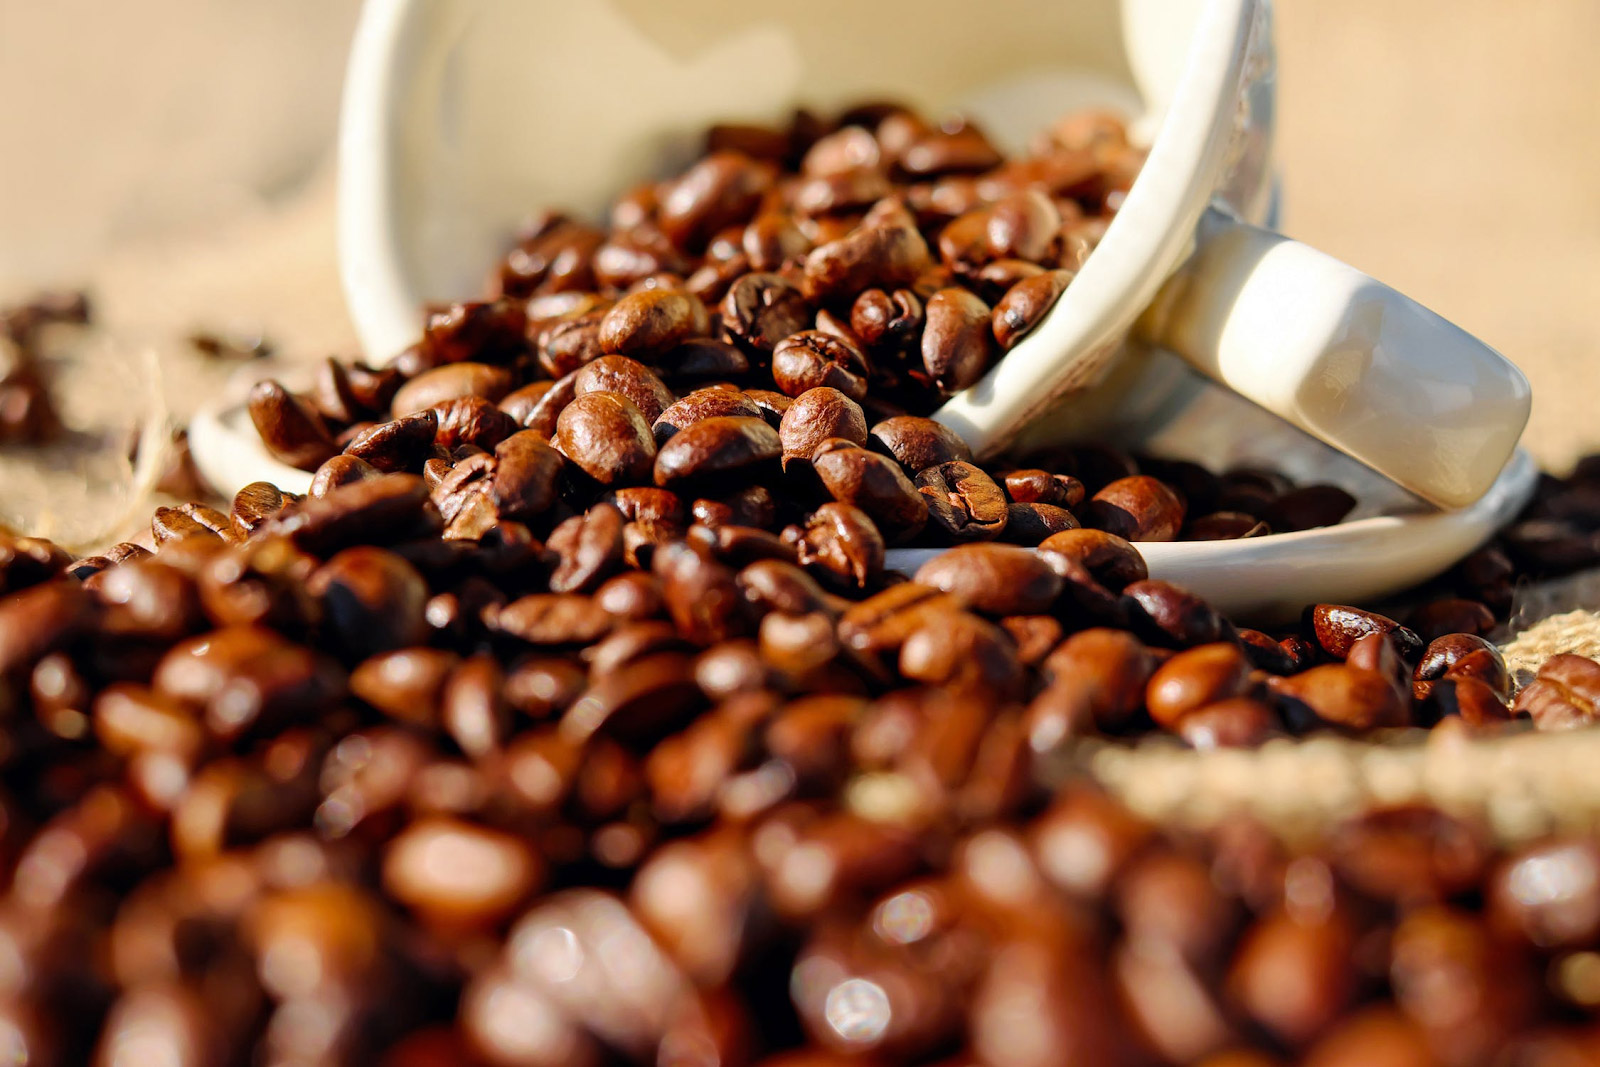 roasted coffee beans spilling out from a cup